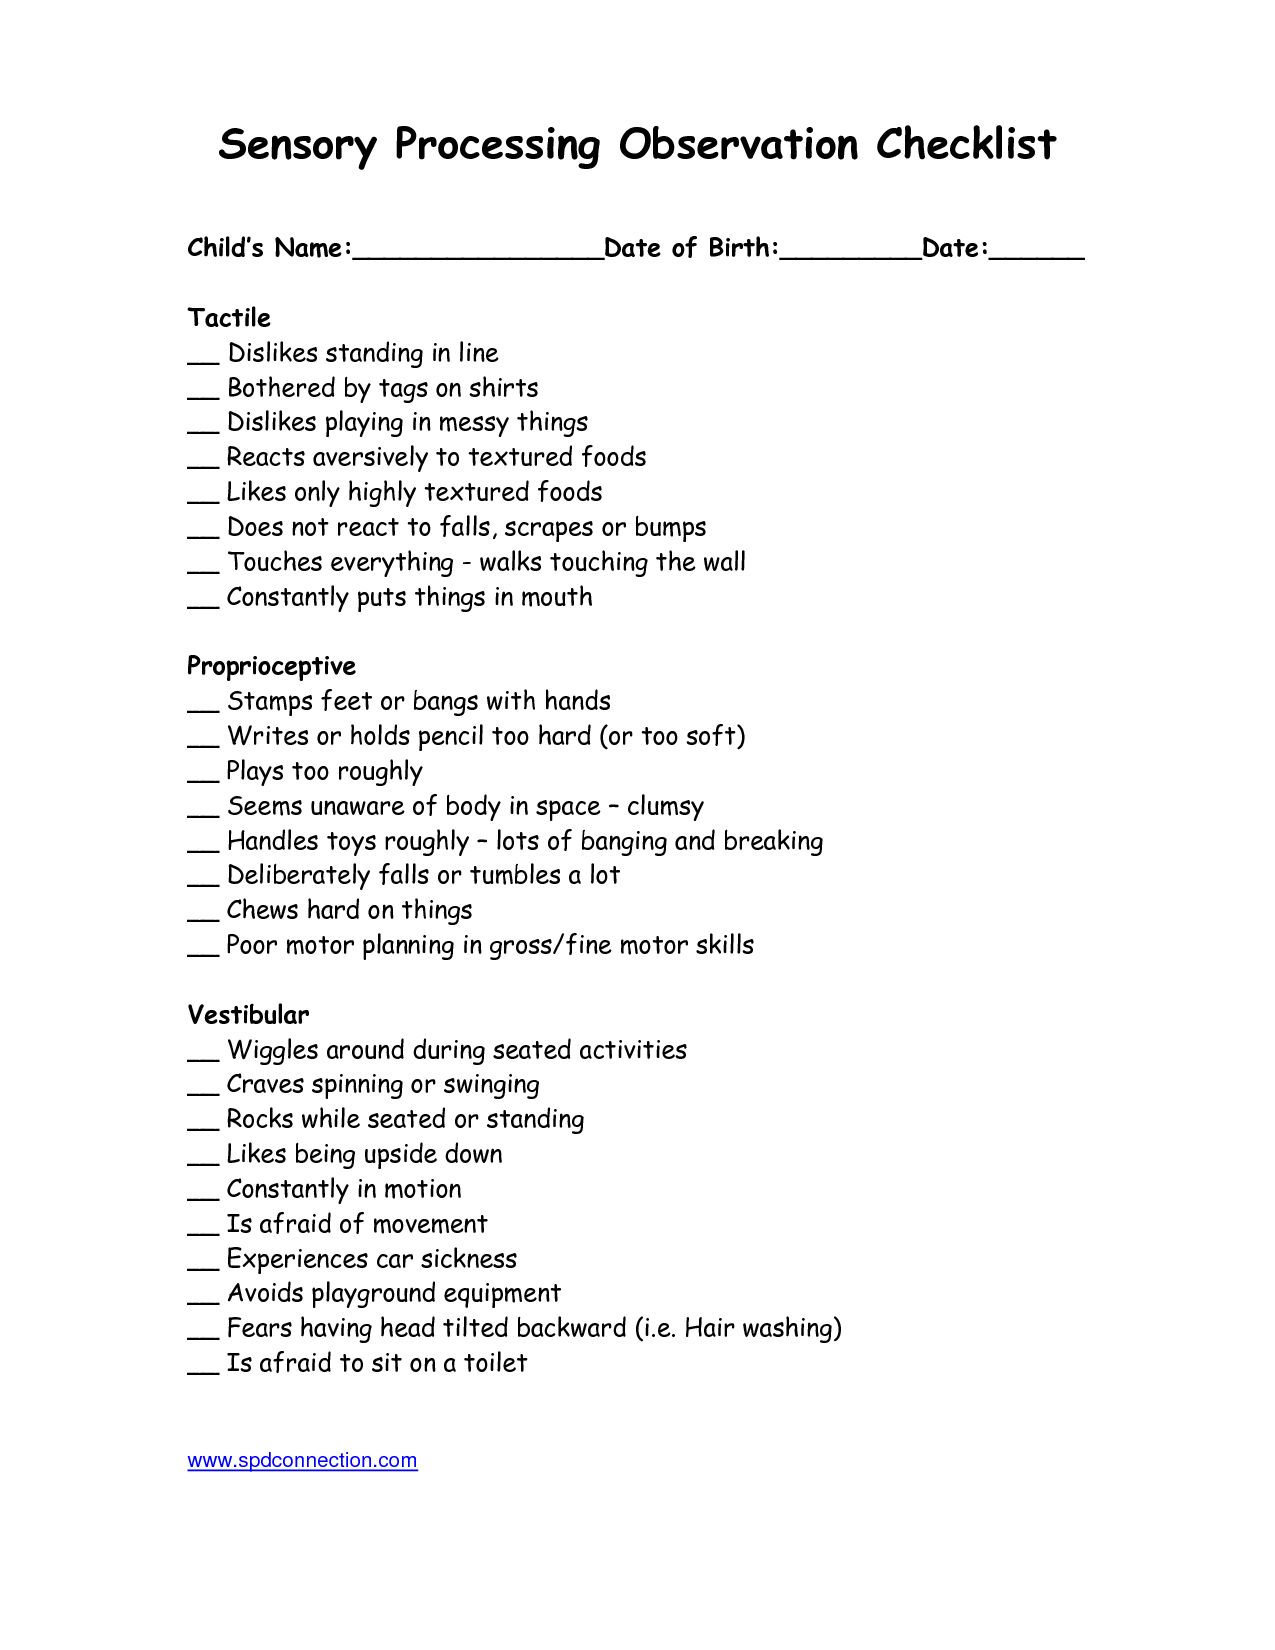 Sensory Processing Observation Checklist